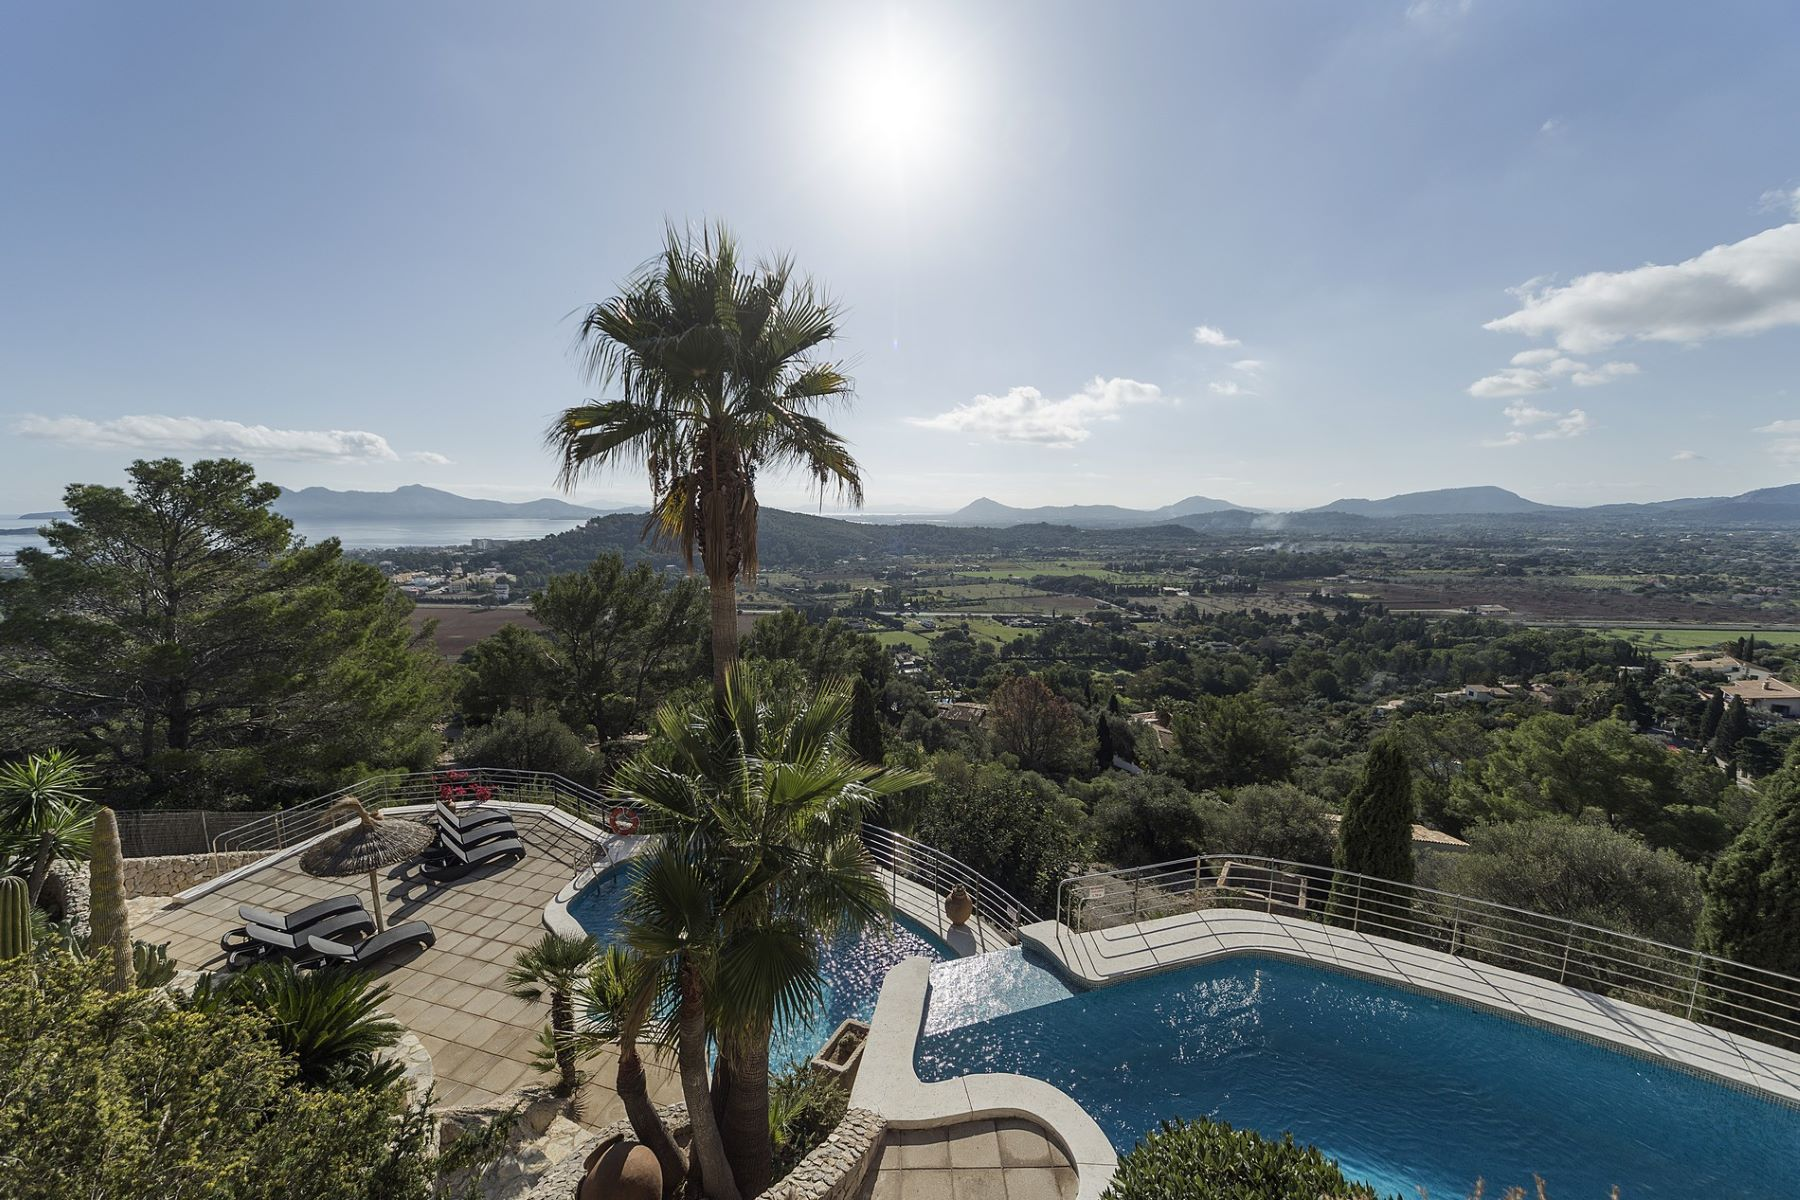 Single Family Home for Sale at Hilltop villa overlooking whole Puerto Pollensa Other Spain, Other Areas In Spain, Spain